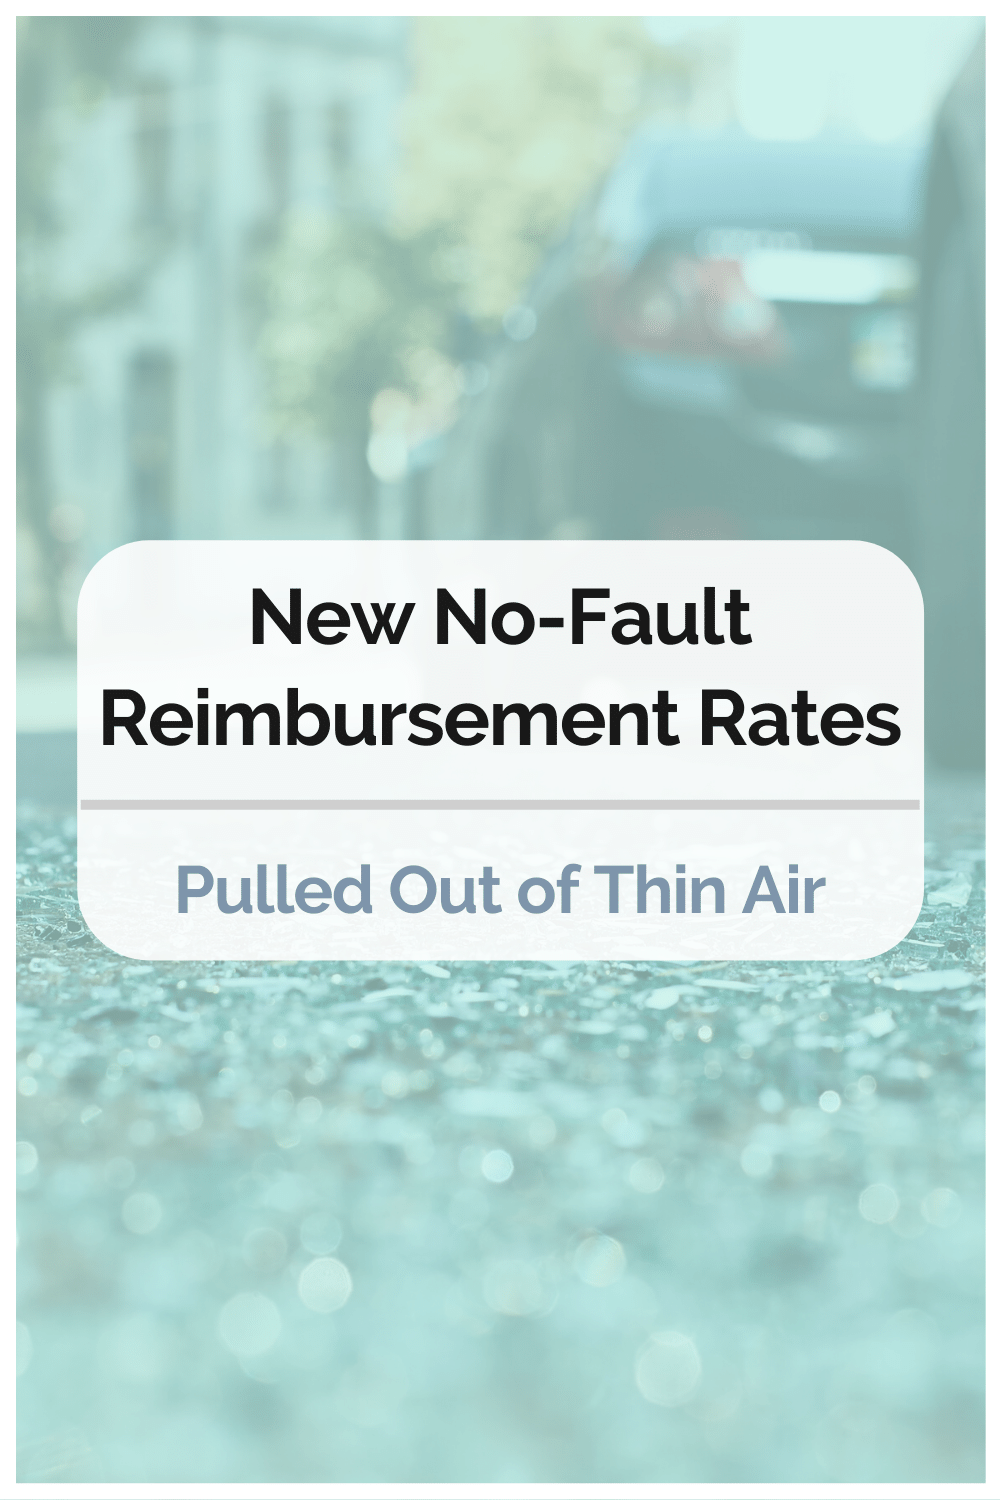 New No-Fault Reimbursement Rates Pulled Out of Thin Air